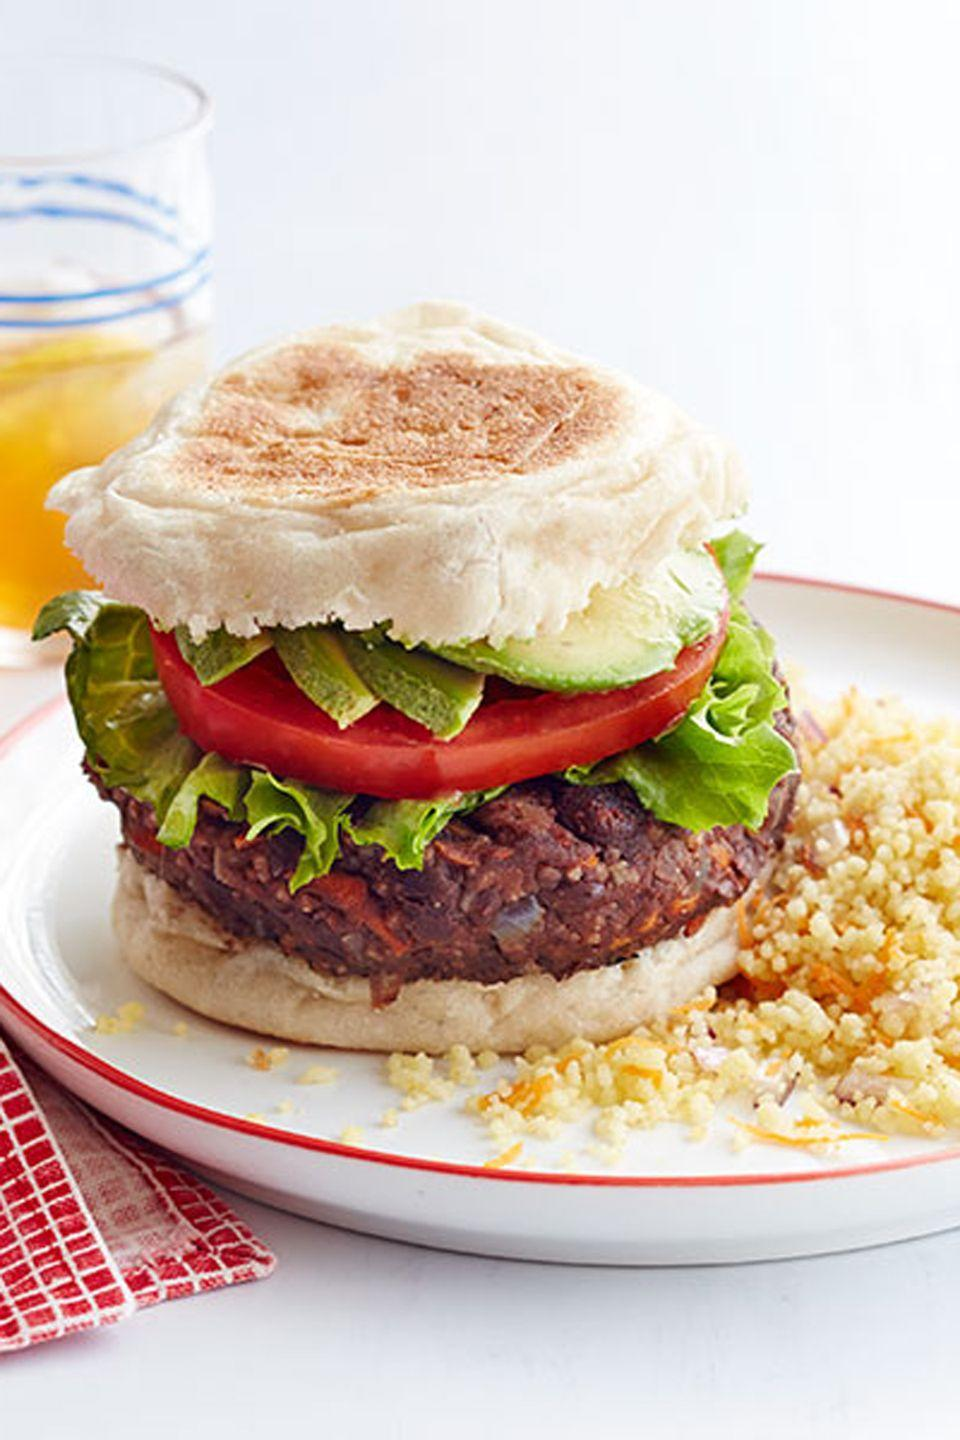 """<p>This hearty bean patty serves as the perfect base for your favorite burger toppings.</p><p><strong><a href=""""https://www.countryliving.com/food-drinks/recipes/a34824/black-bean-veggie-burger-couscous-recipe-wdy0714/"""" rel=""""nofollow noopener"""" target=""""_blank"""" data-ylk=""""slk:Get the recipe"""" class=""""link rapid-noclick-resp"""">Get the recipe</a>.</strong></p><p><strong><a class=""""link rapid-noclick-resp"""" href=""""https://www.amazon.com/T-fal-Specialty-Nonstick-Dishwasher-Cookware/dp/B000EM9PTQ?tag=syn-yahoo-20&ascsubtag=%5Bartid%7C10050.g.32934702%5Bsrc%7Cyahoo-us"""" rel=""""nofollow noopener"""" target=""""_blank"""" data-ylk=""""slk:SHOP SAUTE PANS""""><strong>SHOP SAUTE PANS</strong></a><br></strong></p>"""